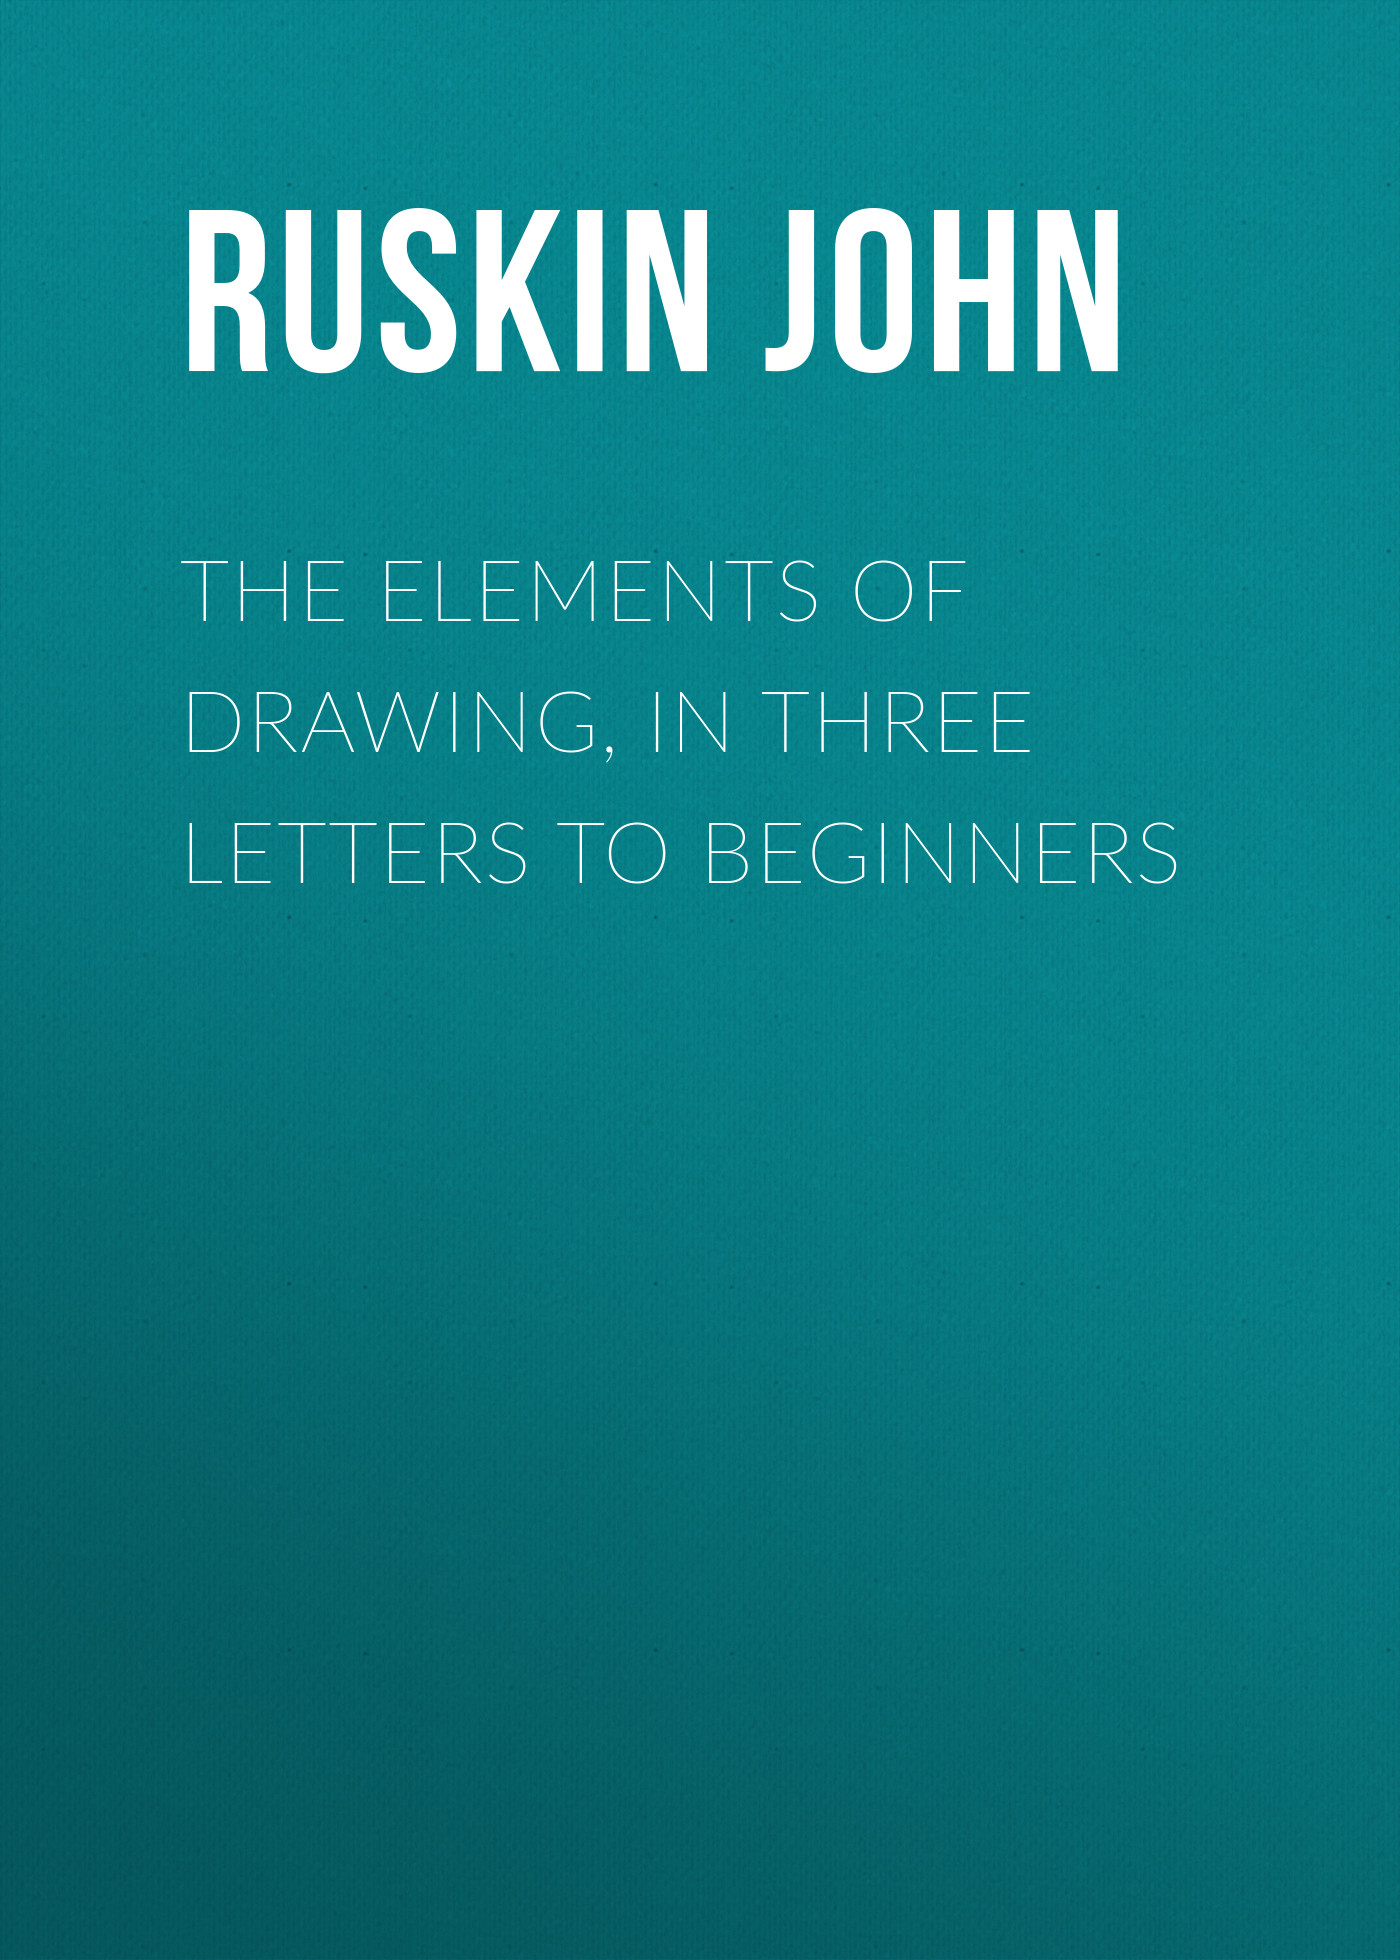 Ruskin John The Elements of Drawing, in Three Letters to Beginners